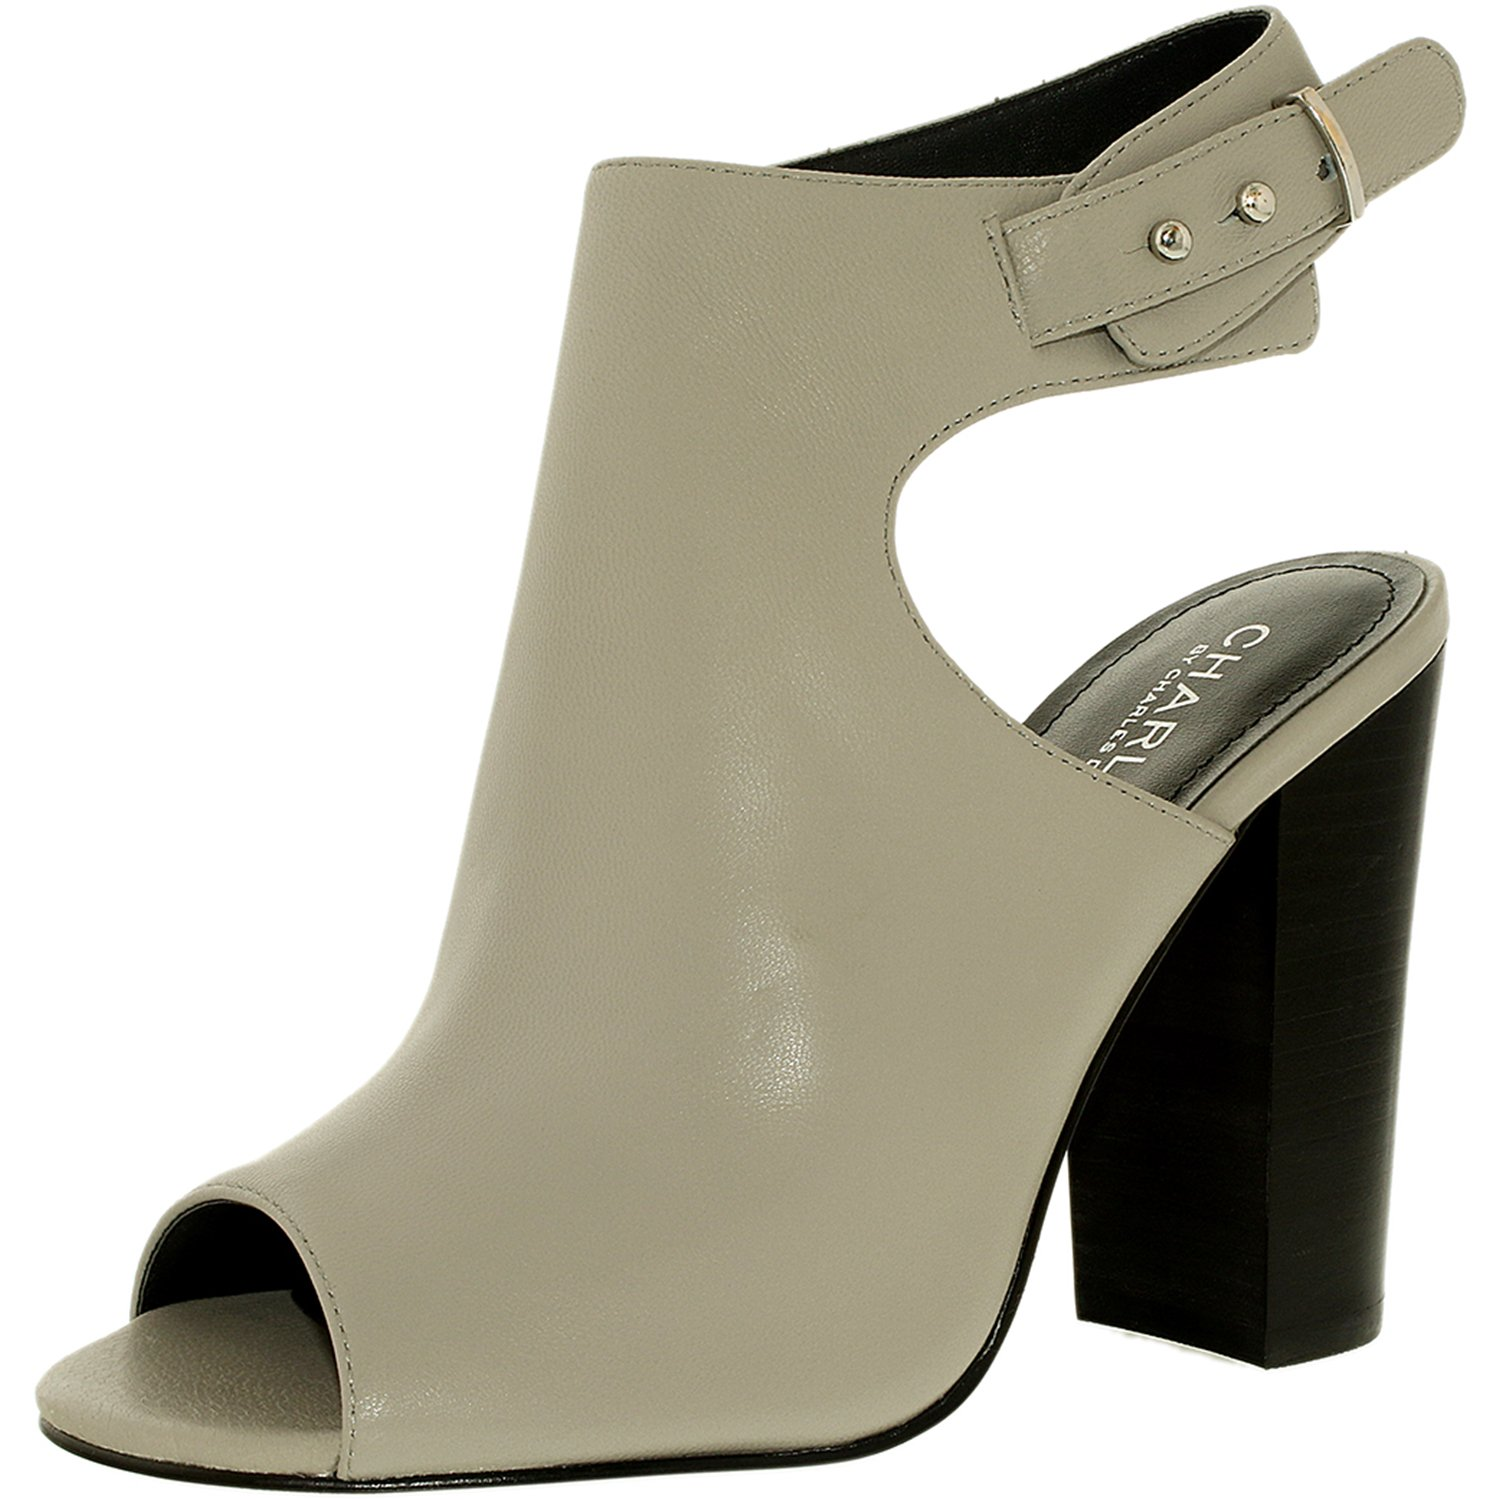 Charles By David Women's Garcia Leather Fog-Sl Soft Ankle-High Boot - 10M